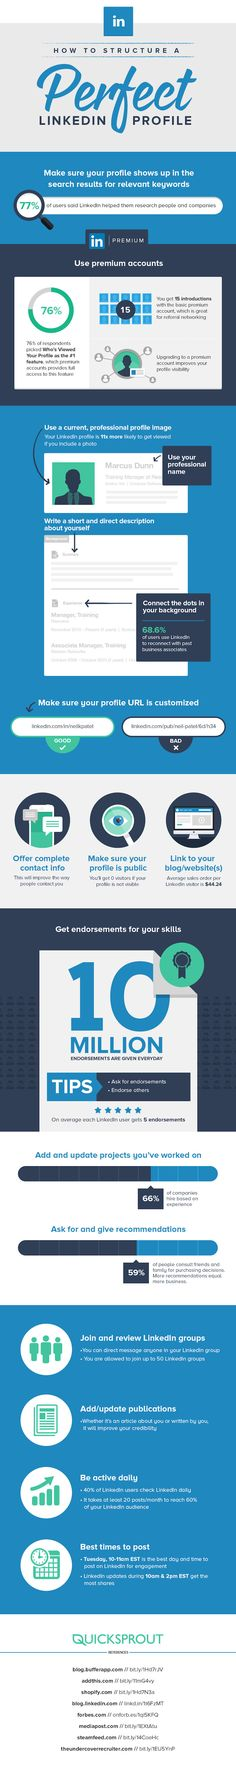 How to Structure a Perfect LinkedIn Profile #infographic #LinkedIn #SocialMedia